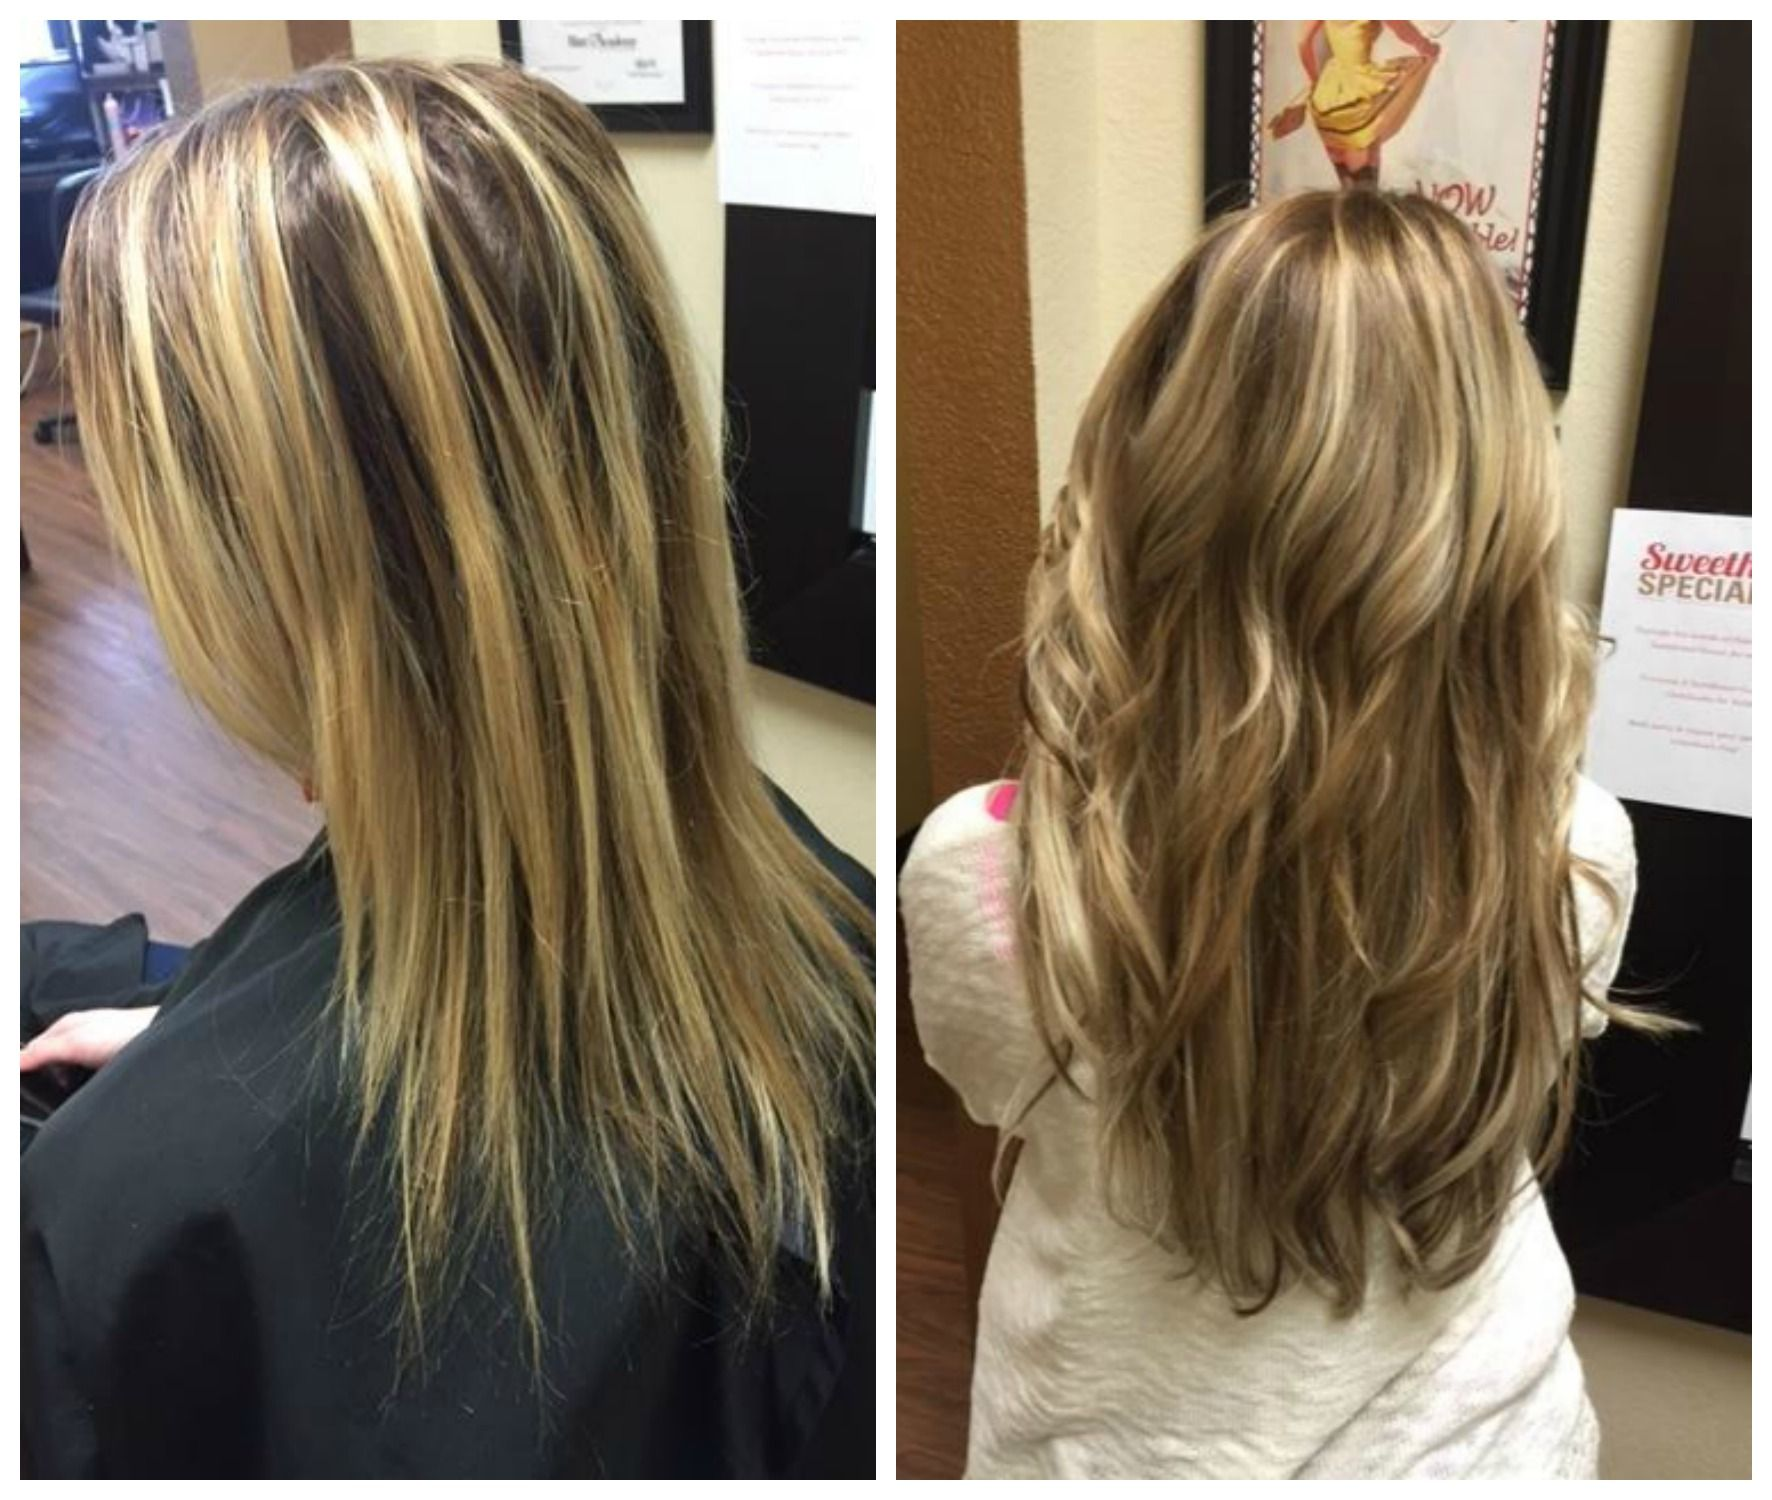 Hair Extensions Before And After Free Consult 979820 7099 Hair